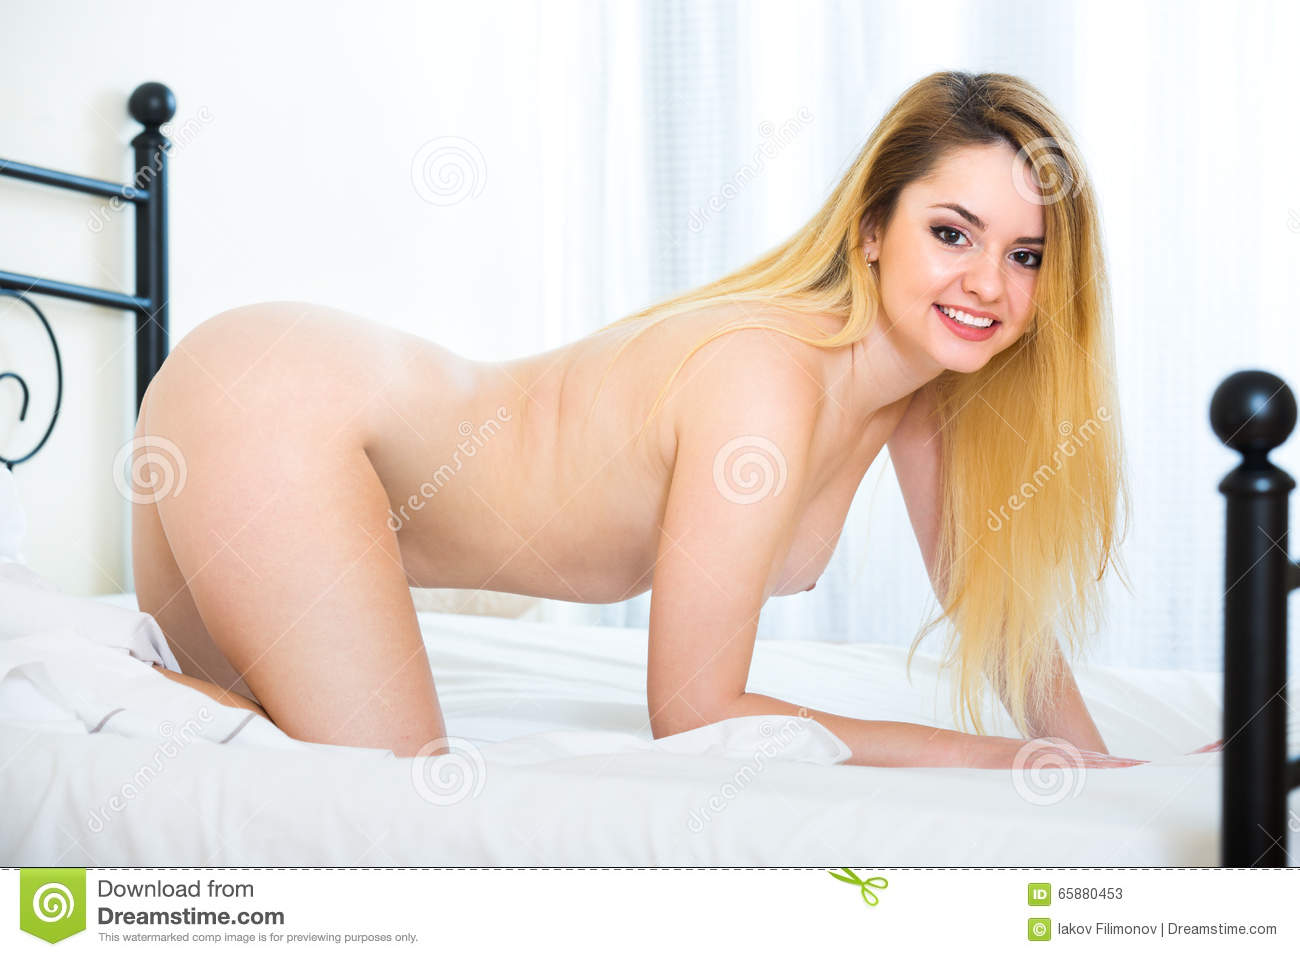 Nude girl in bed